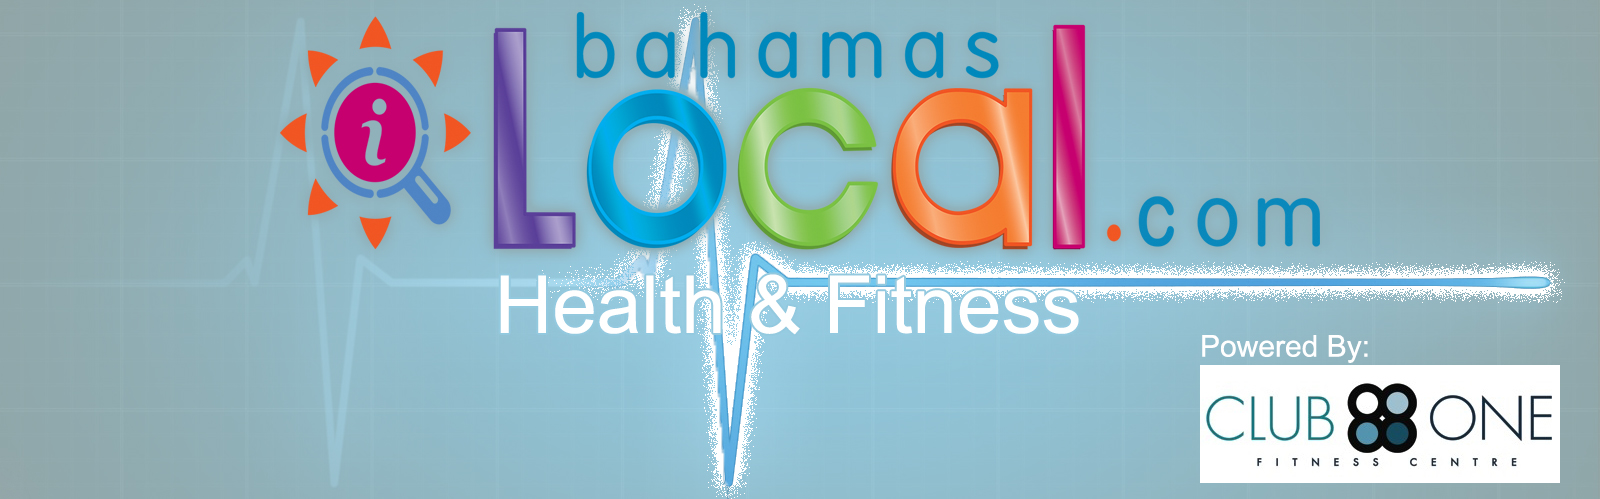 BahamasLocal.com Health & Fitness